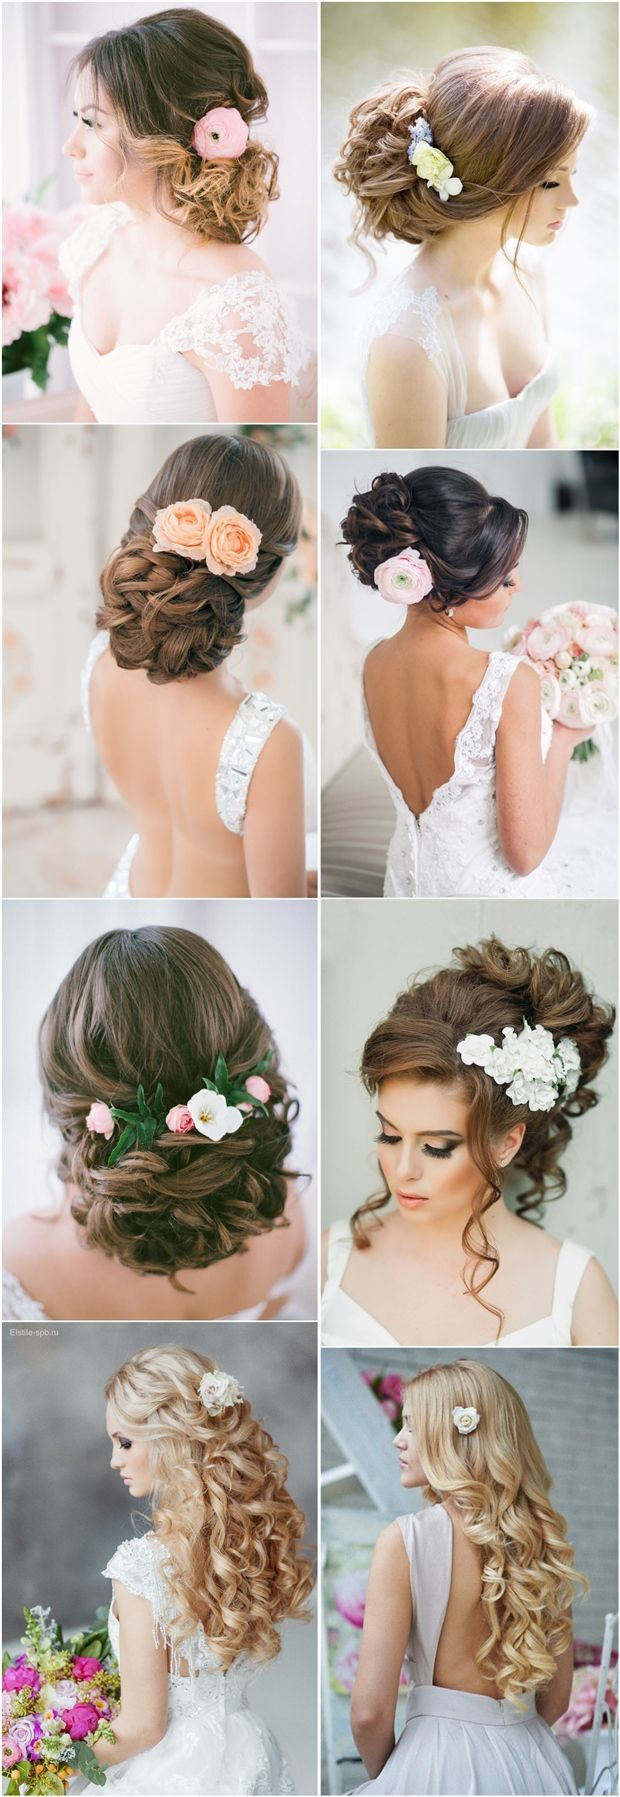 hair flower style 25 best ideas about wedding hairstyles on 4388 | 5c4c02e9db002c48e9c715b13a680ac6 updos with flowers hair styles with flowers